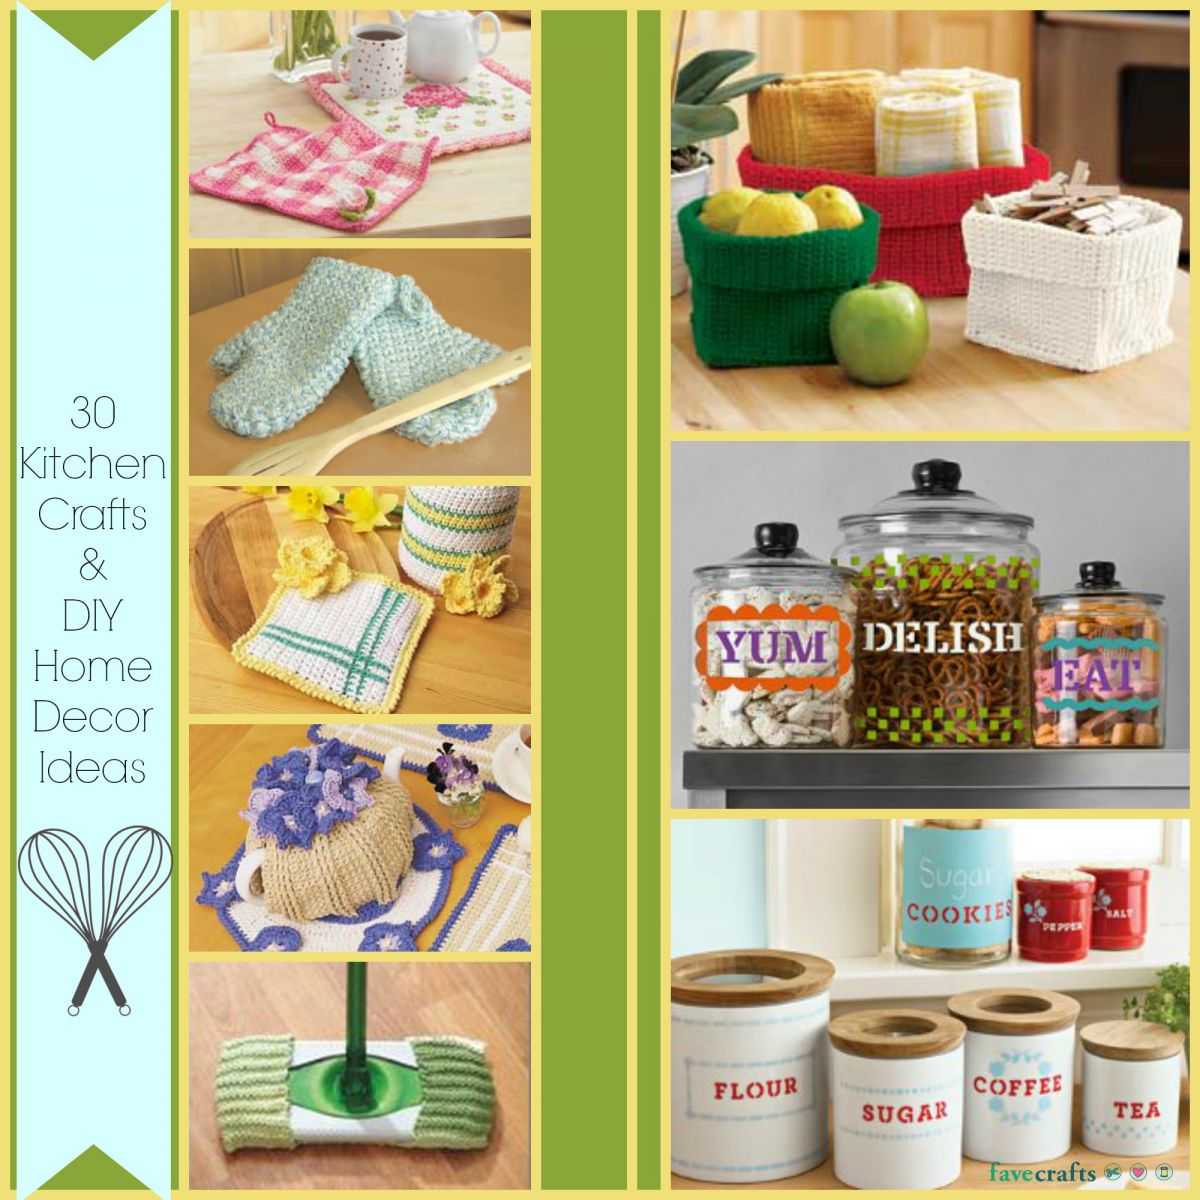 30 kitchen crafts and diy home decor ideas